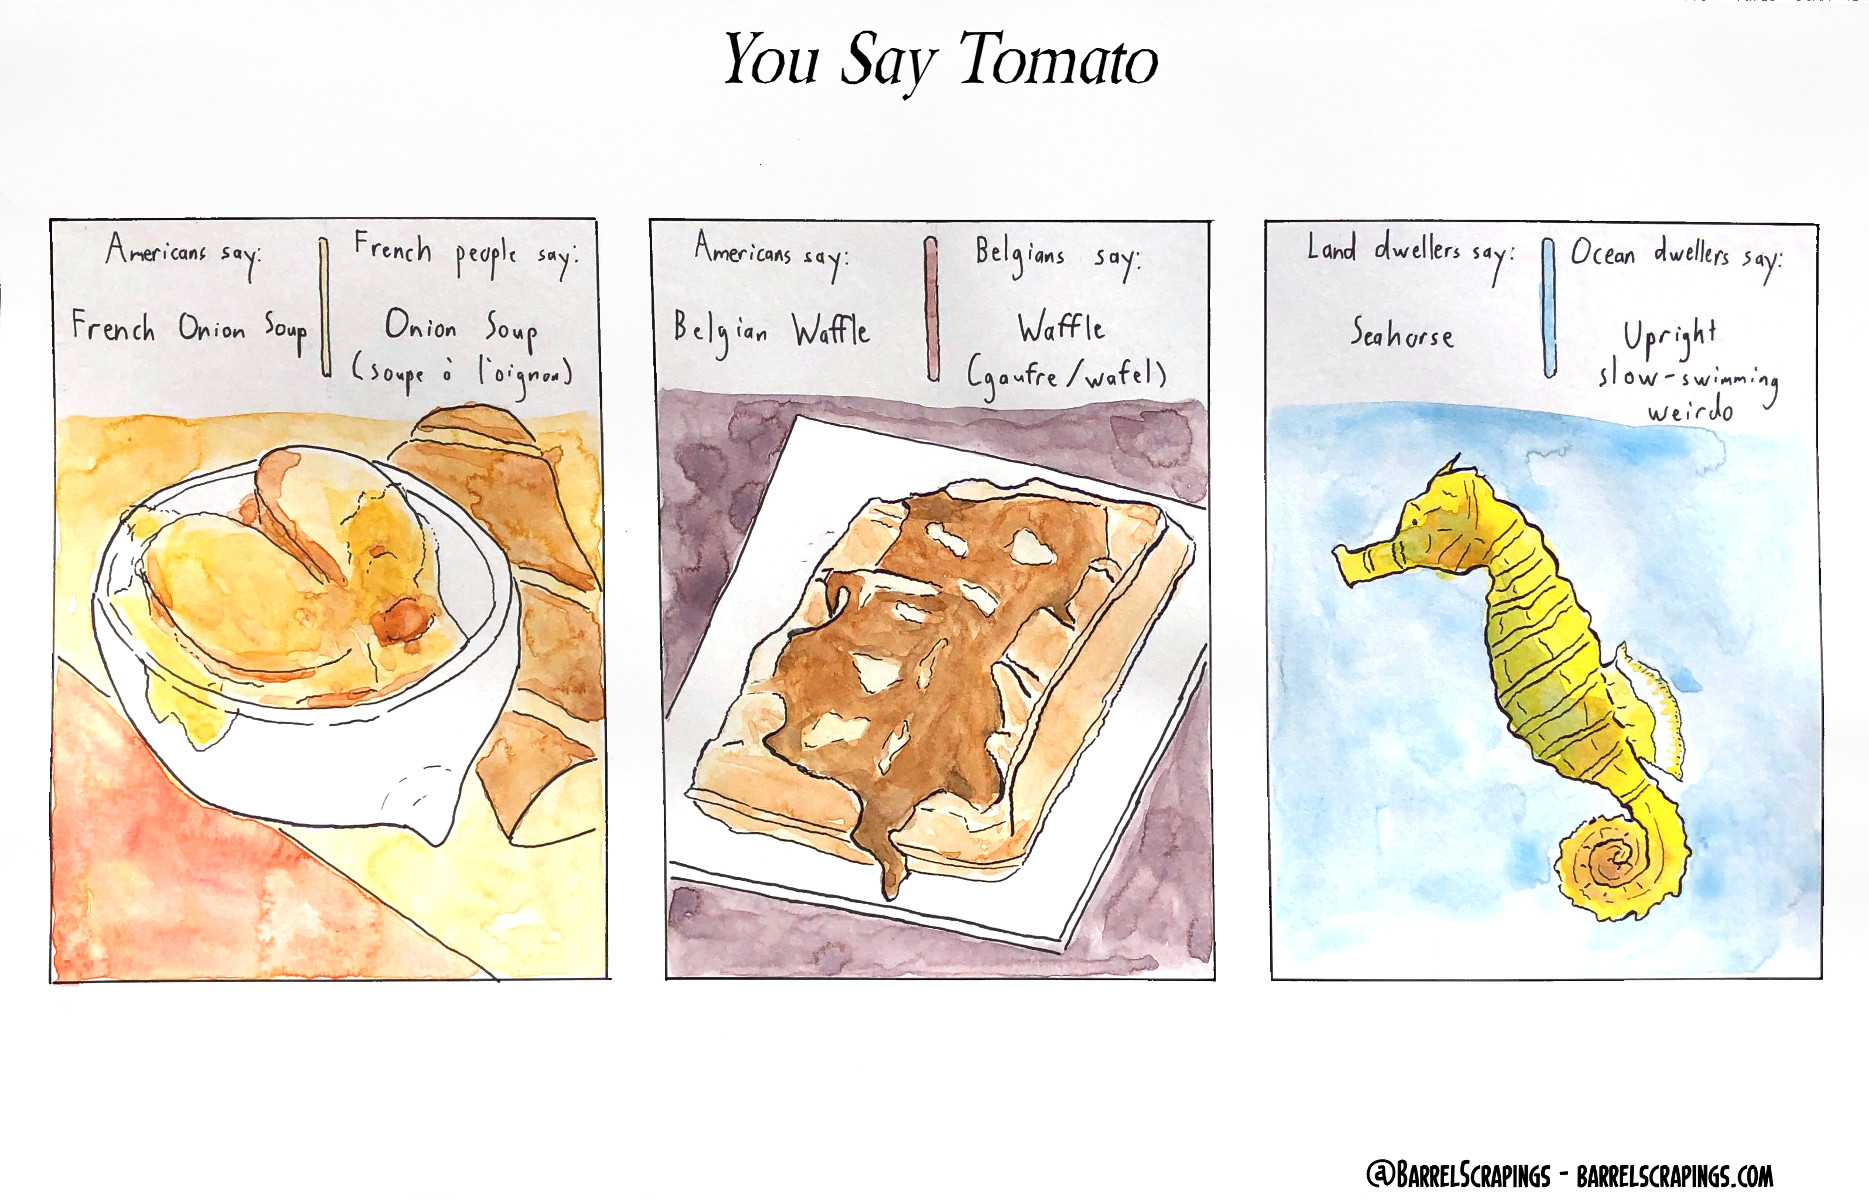 image from You Say Tomato